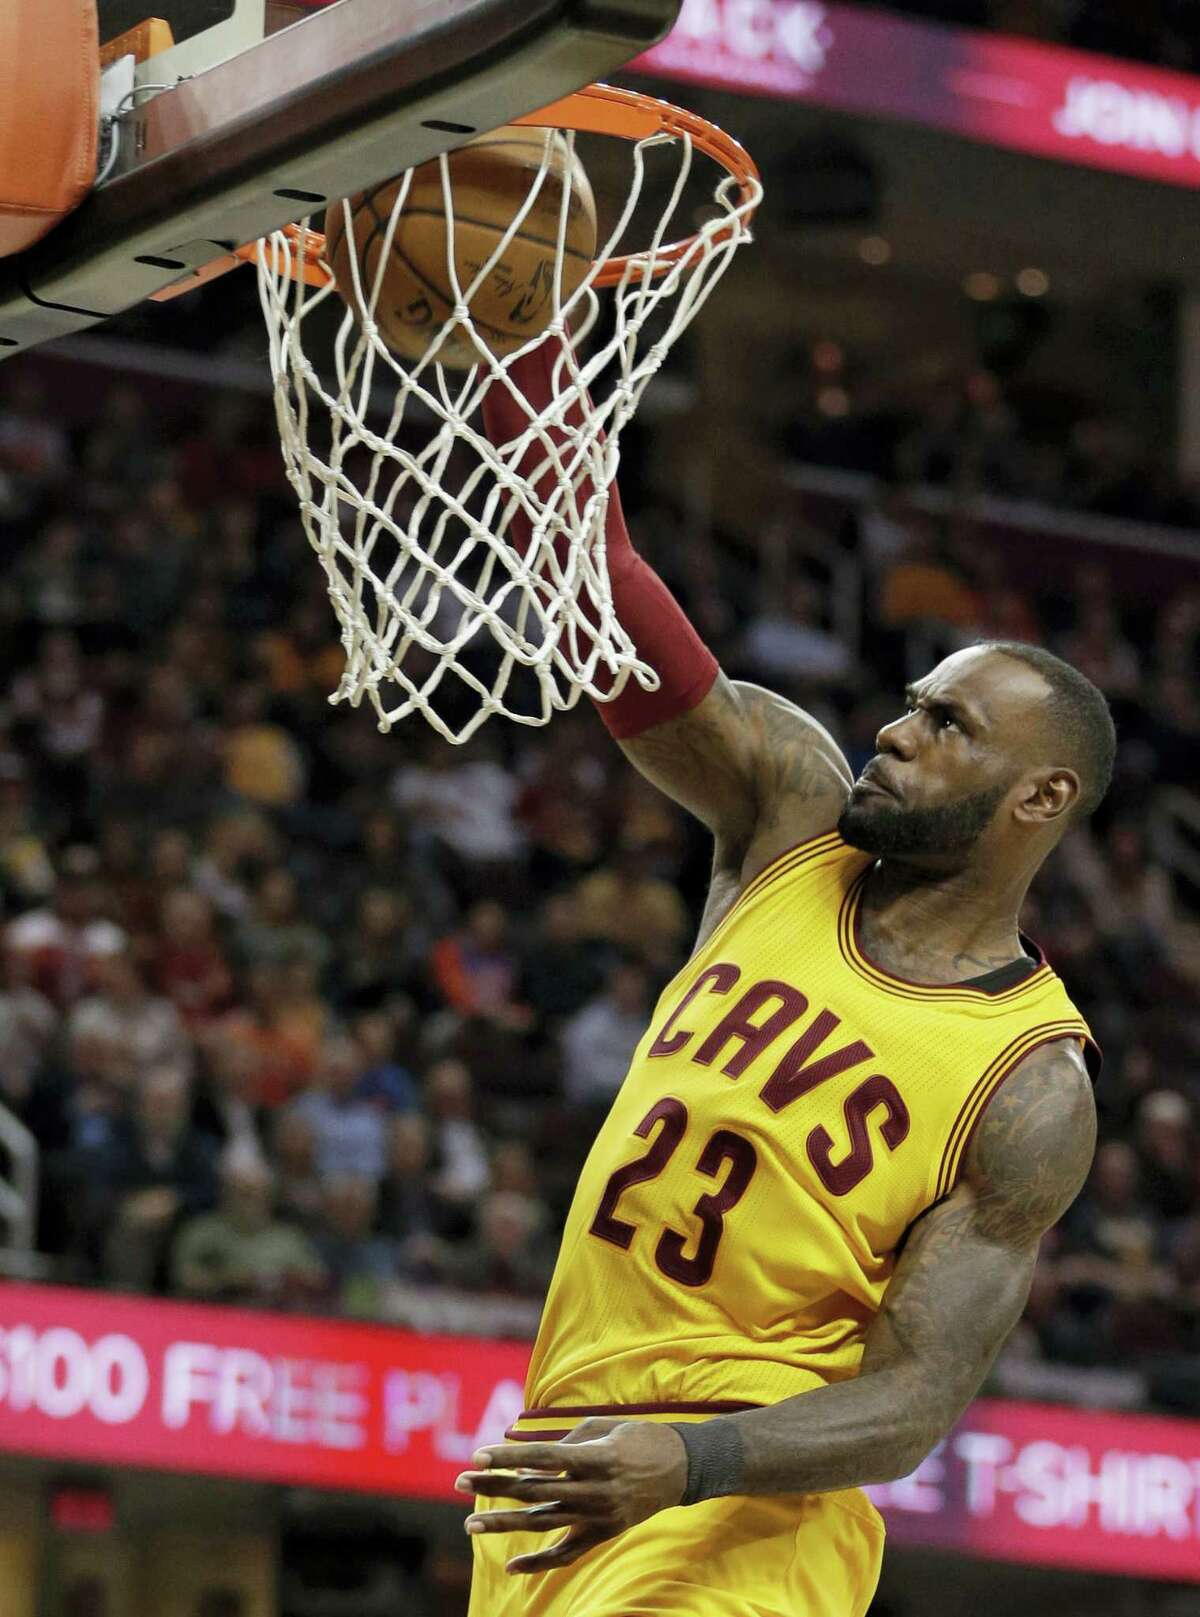 Cleveland Cavaliers' LeBron James dunks against the Milwaukee Bucks in the first half of an NBA basketball game on Feb. 27, 2017 in Cleveland. The Cavaliers won 102-95.